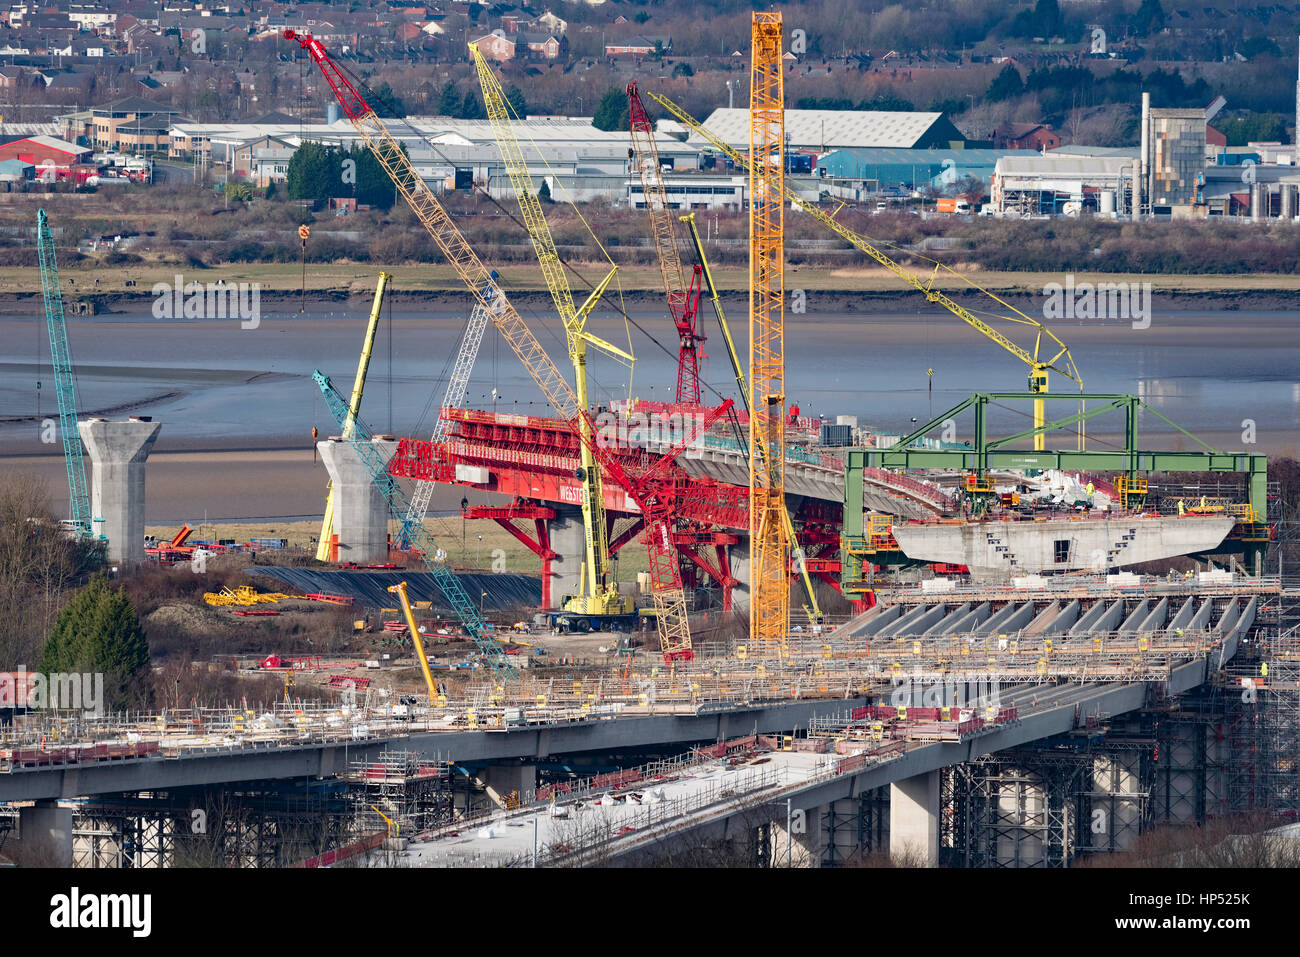 Runcorn.Cheshire. North West England. Friday 17th February 2017. The new Gateway bridge over the river Mersey takes Stock Photo